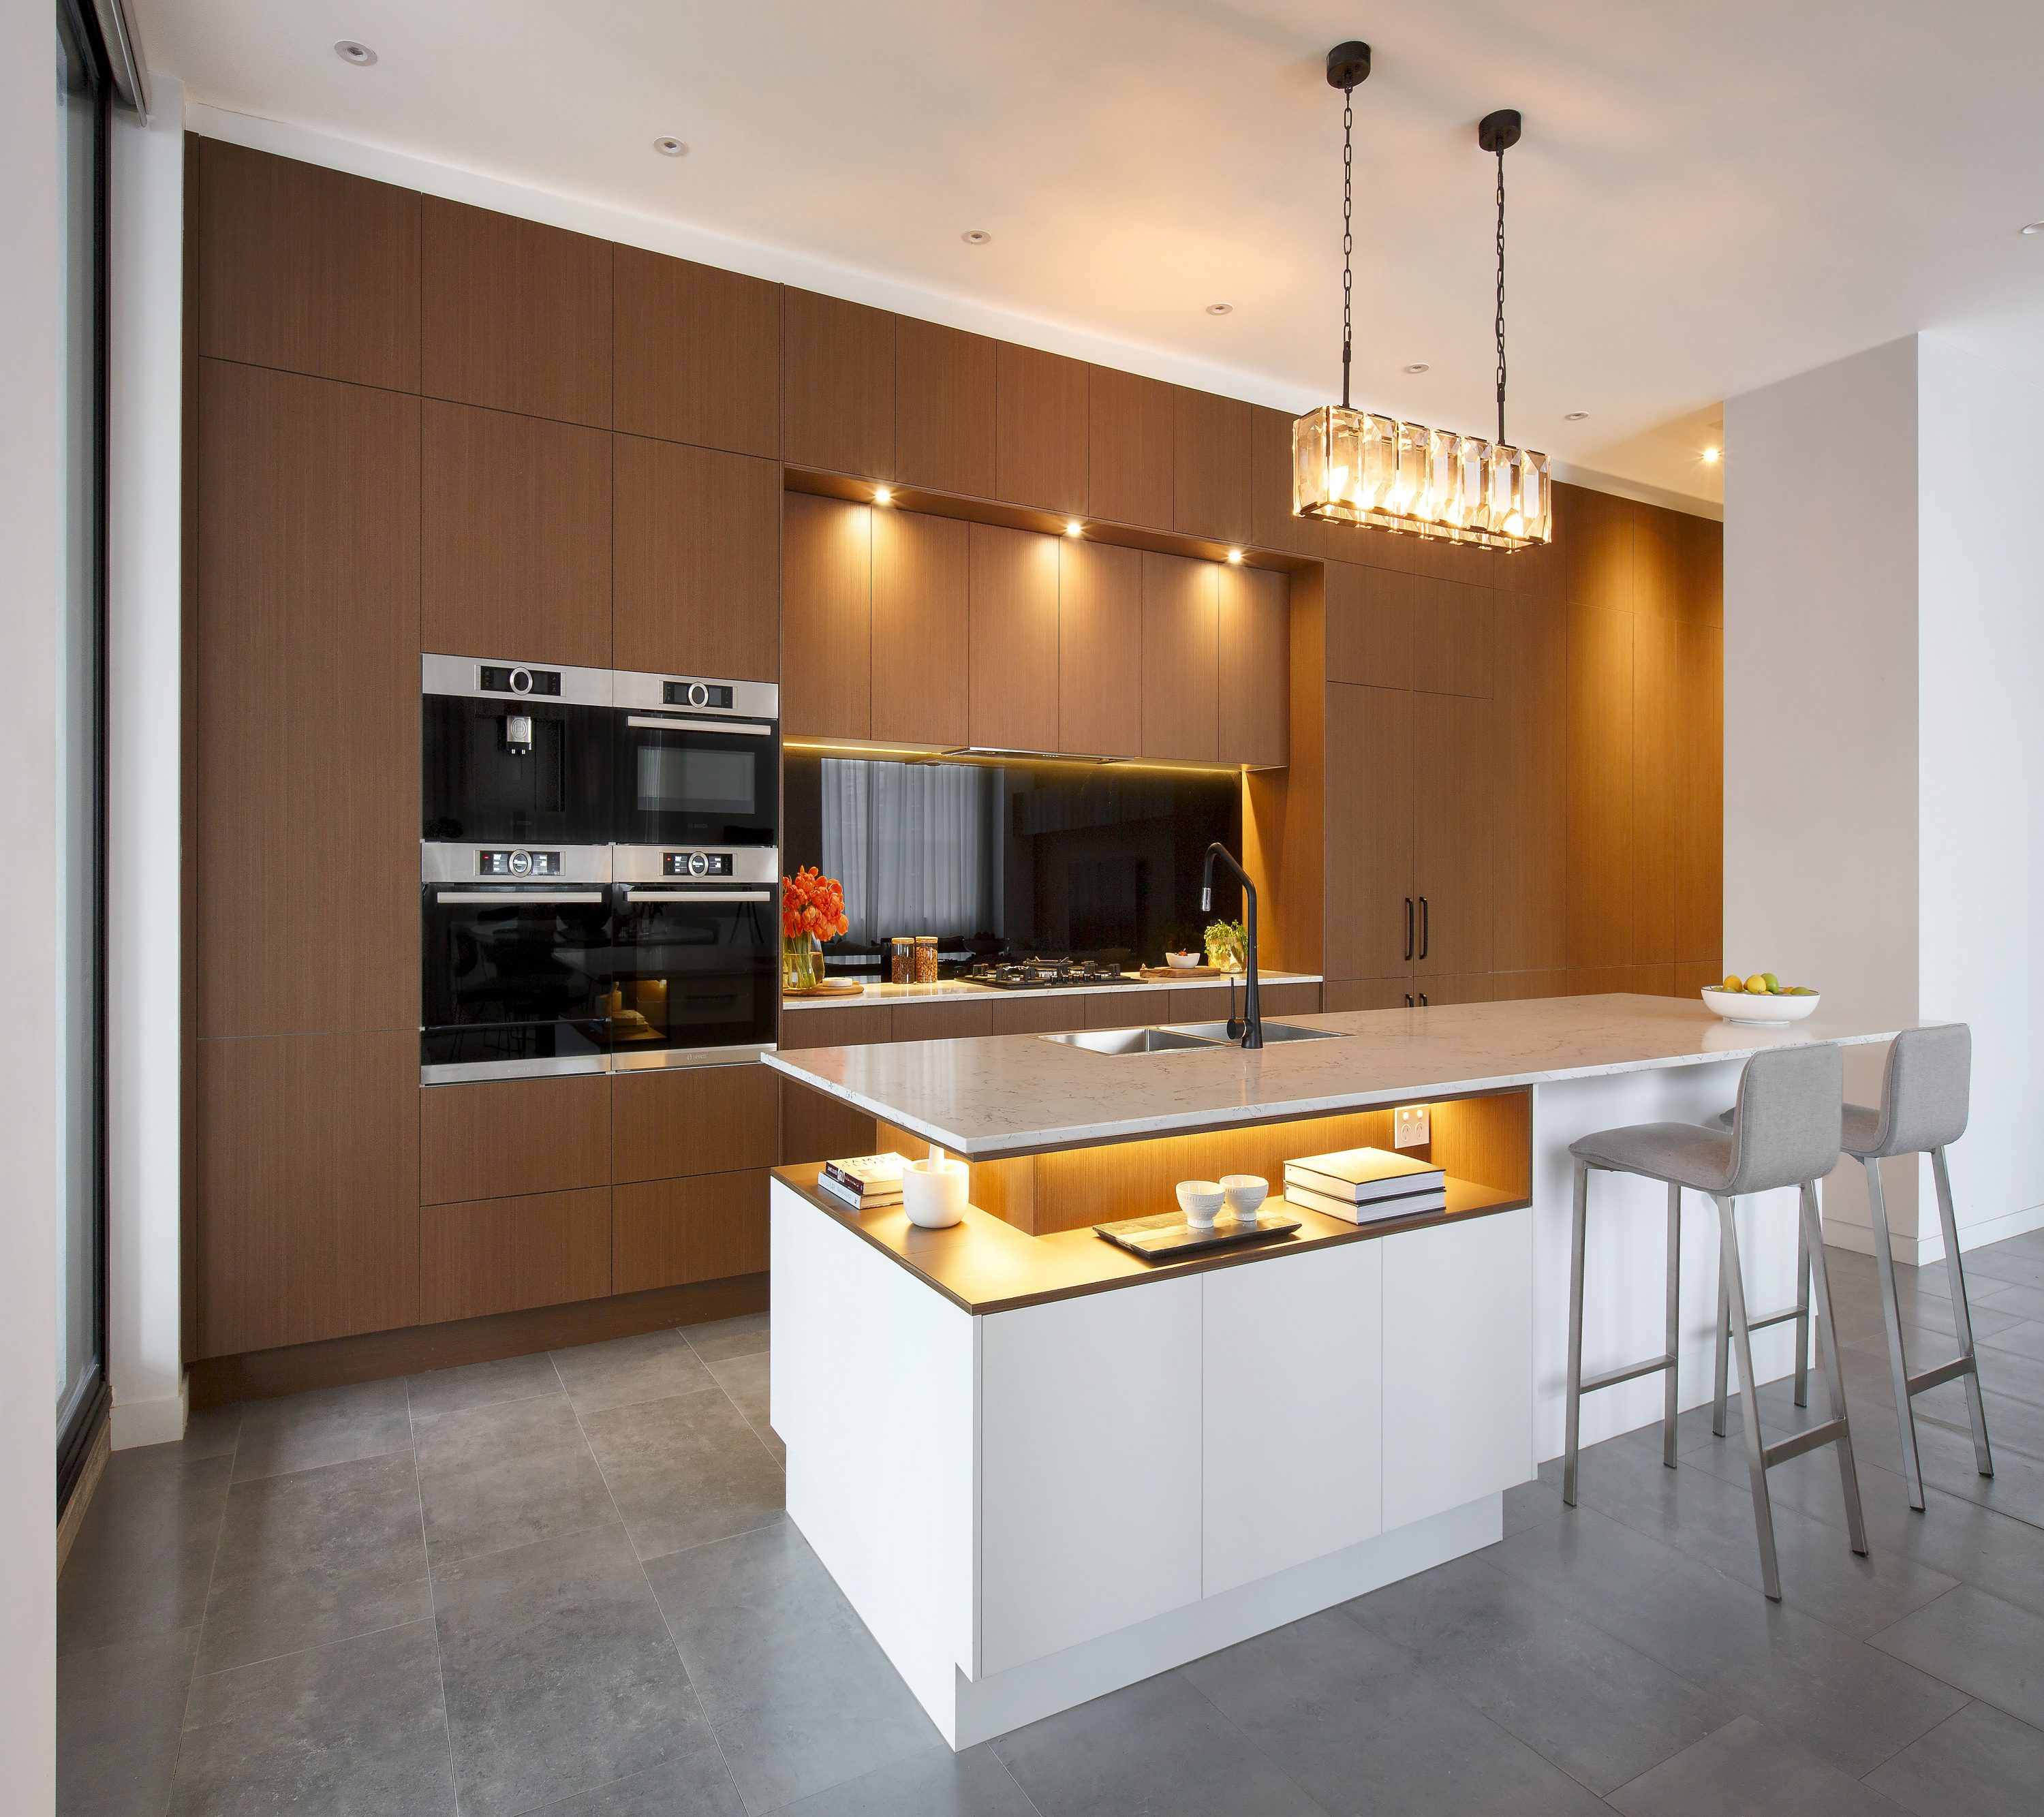 Freedom Furniture Kitchens Expert Opinion Darren Palmer Reviews The Block Kitchens